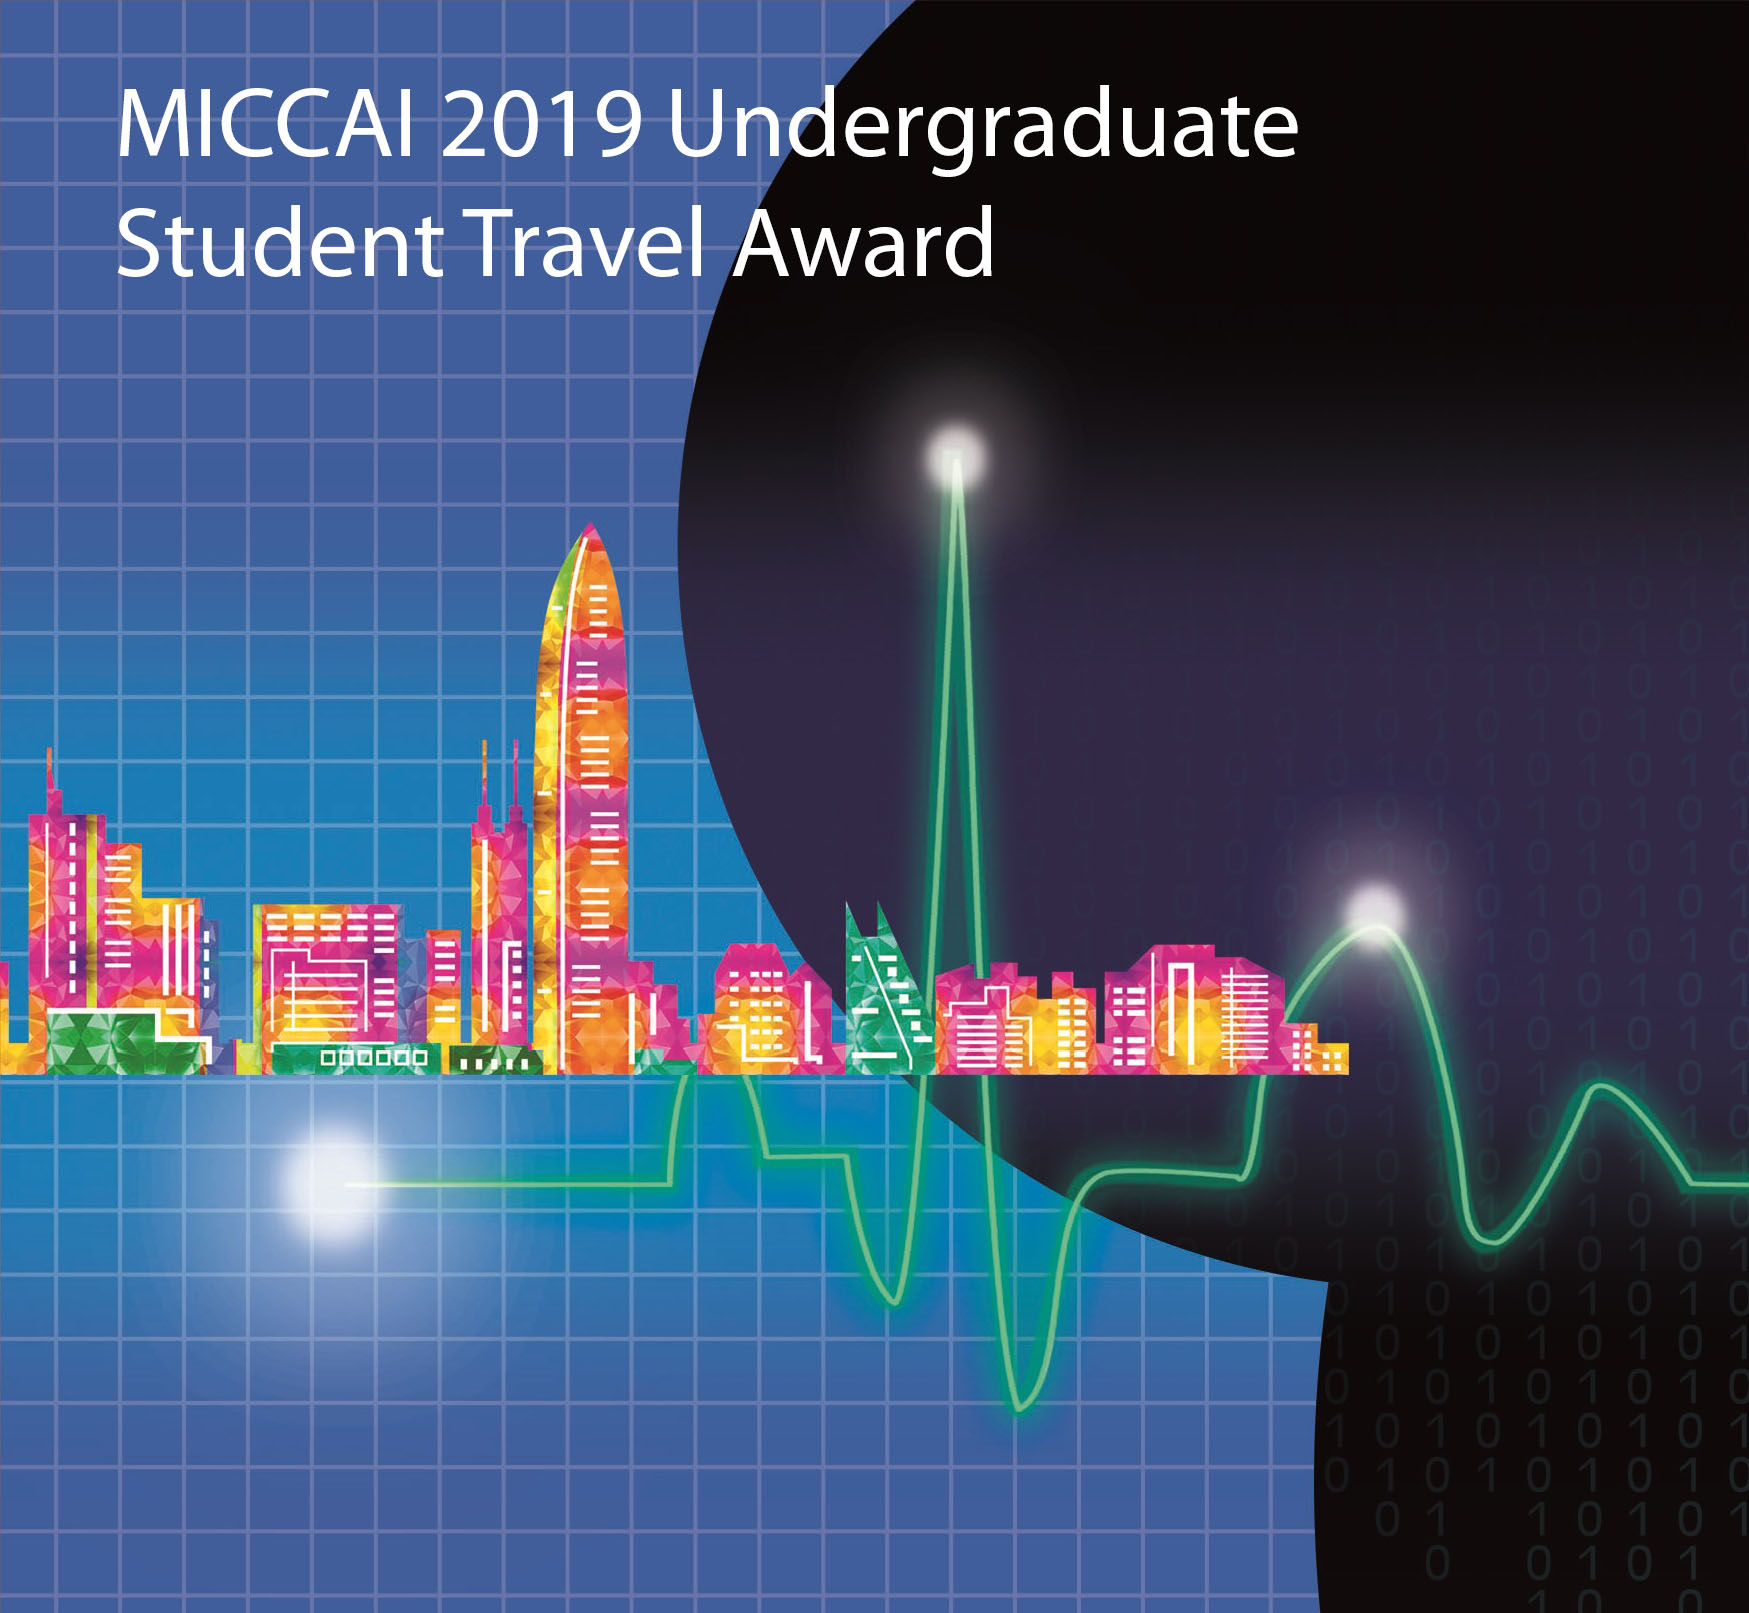 MICCAI 2019 Undergraduate Student Travel Award Application